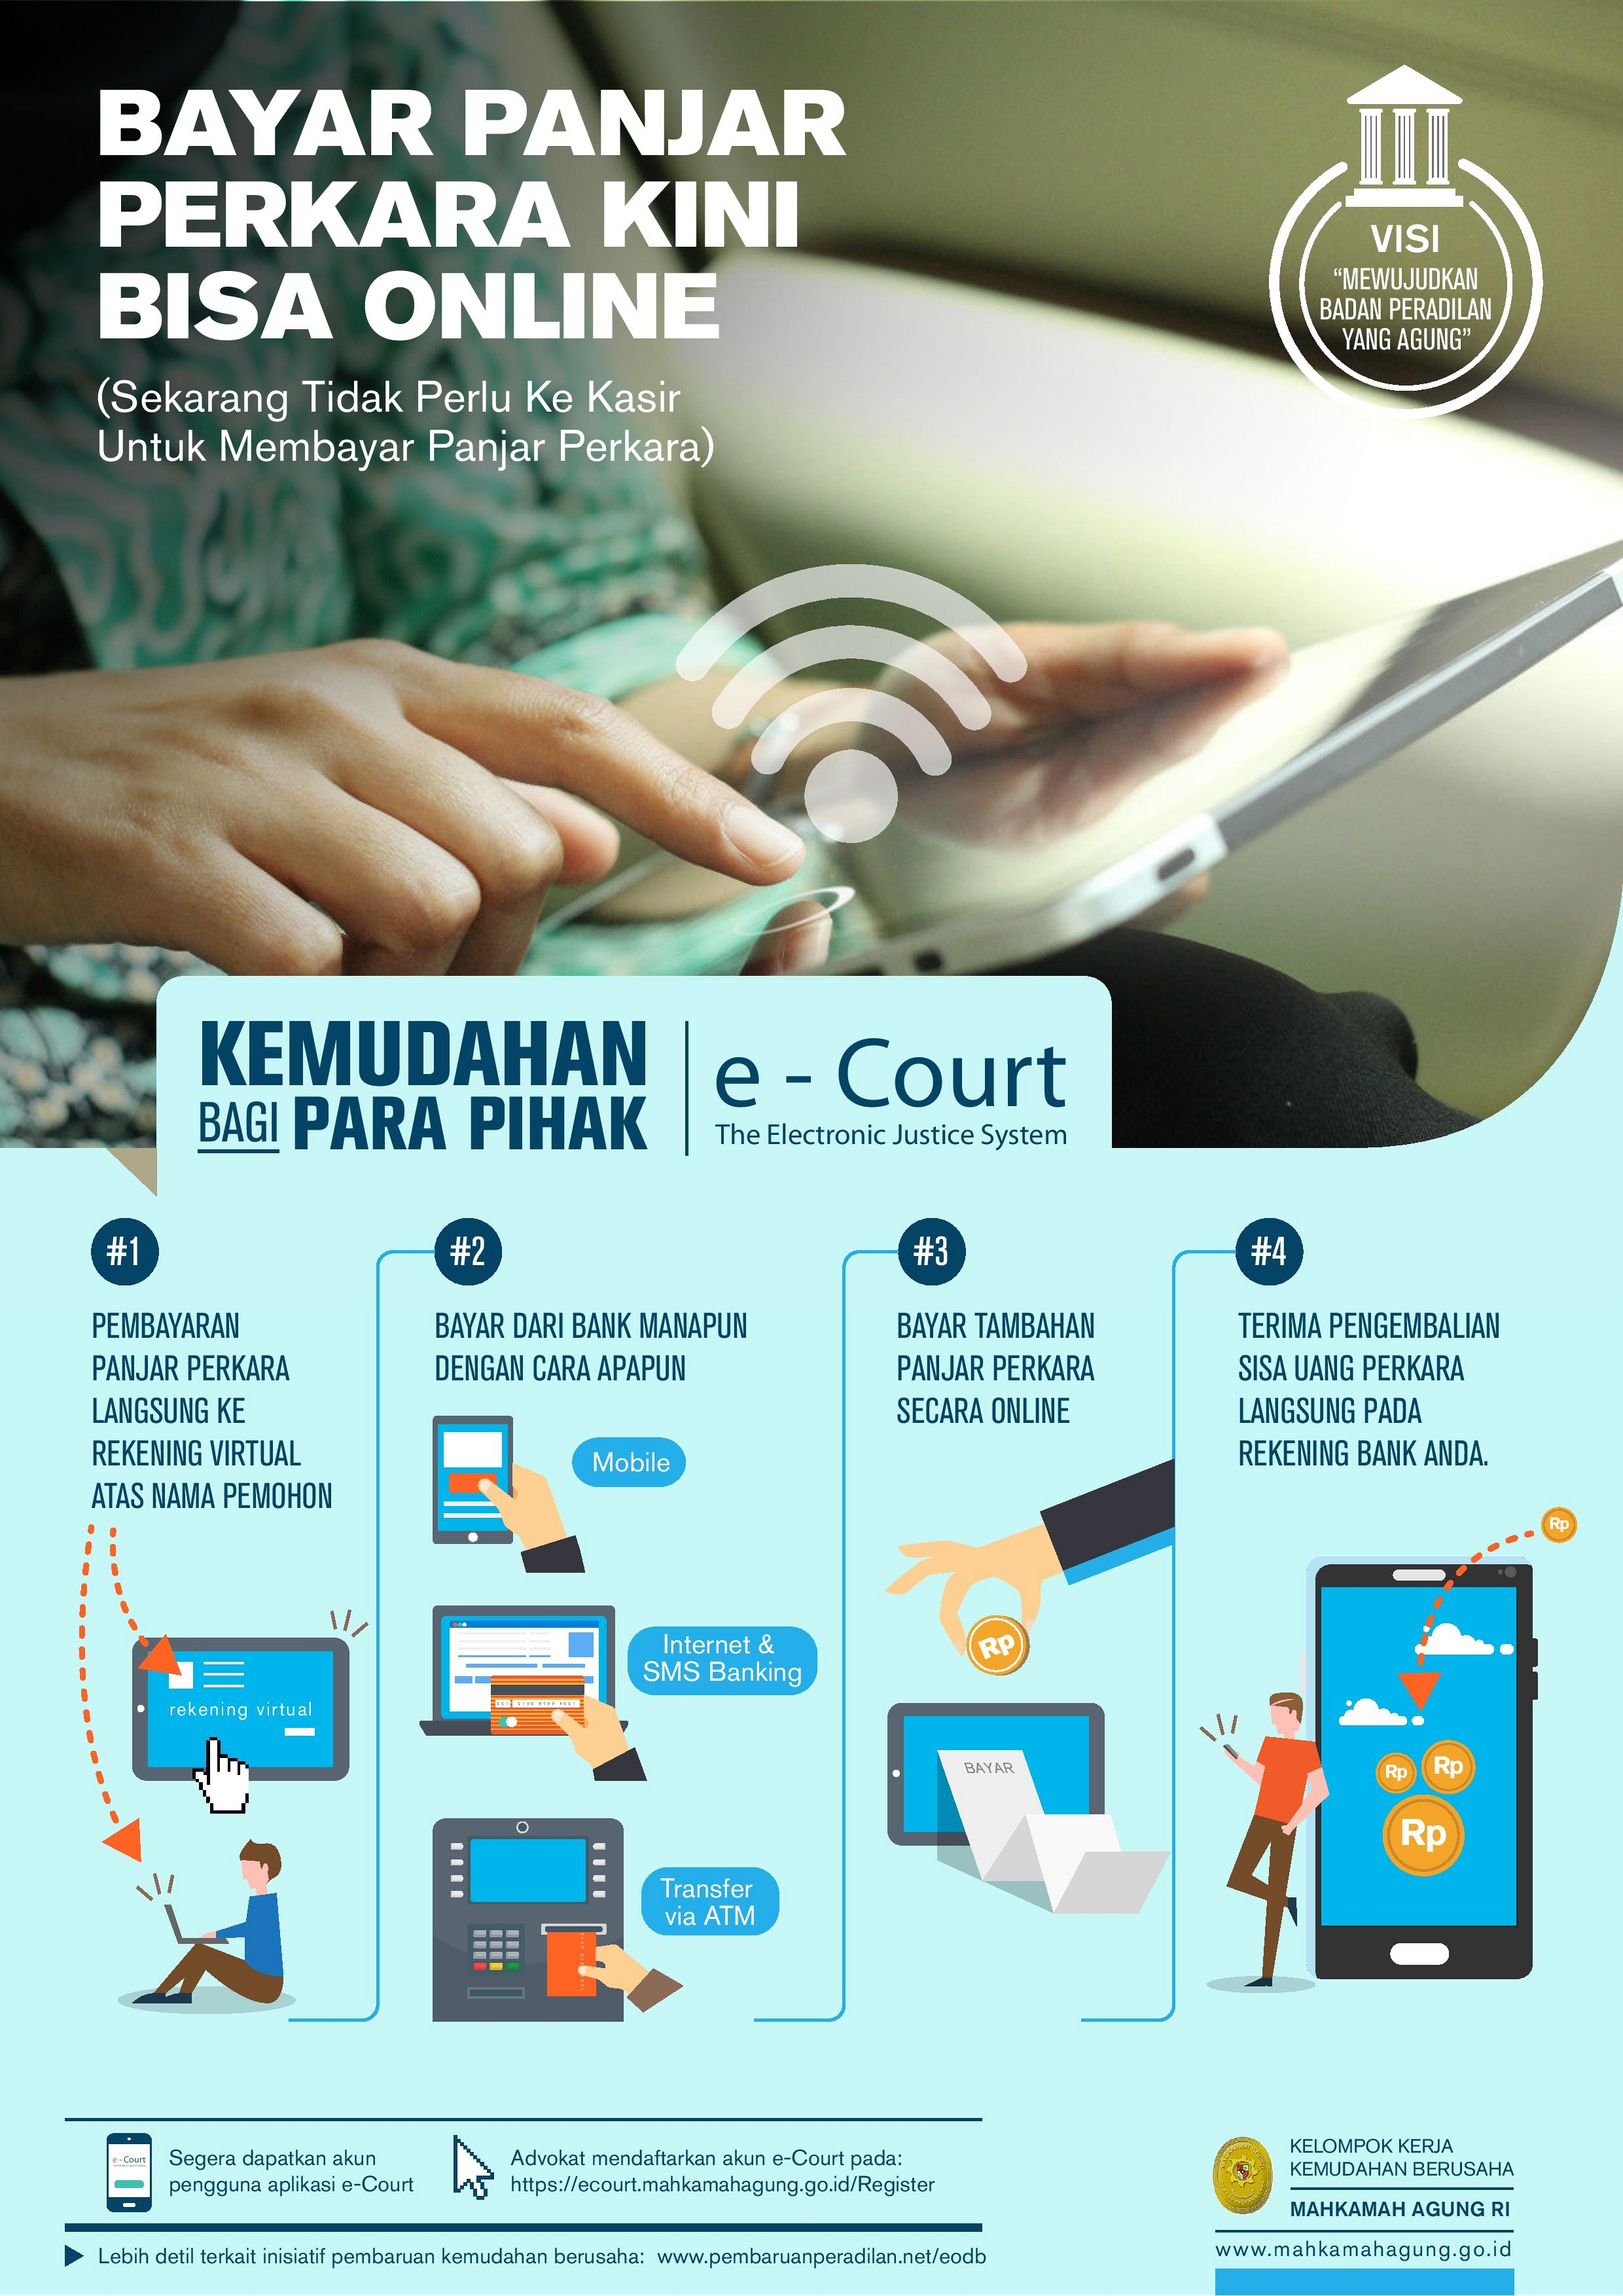 E-COURT - The Electronic Justices System